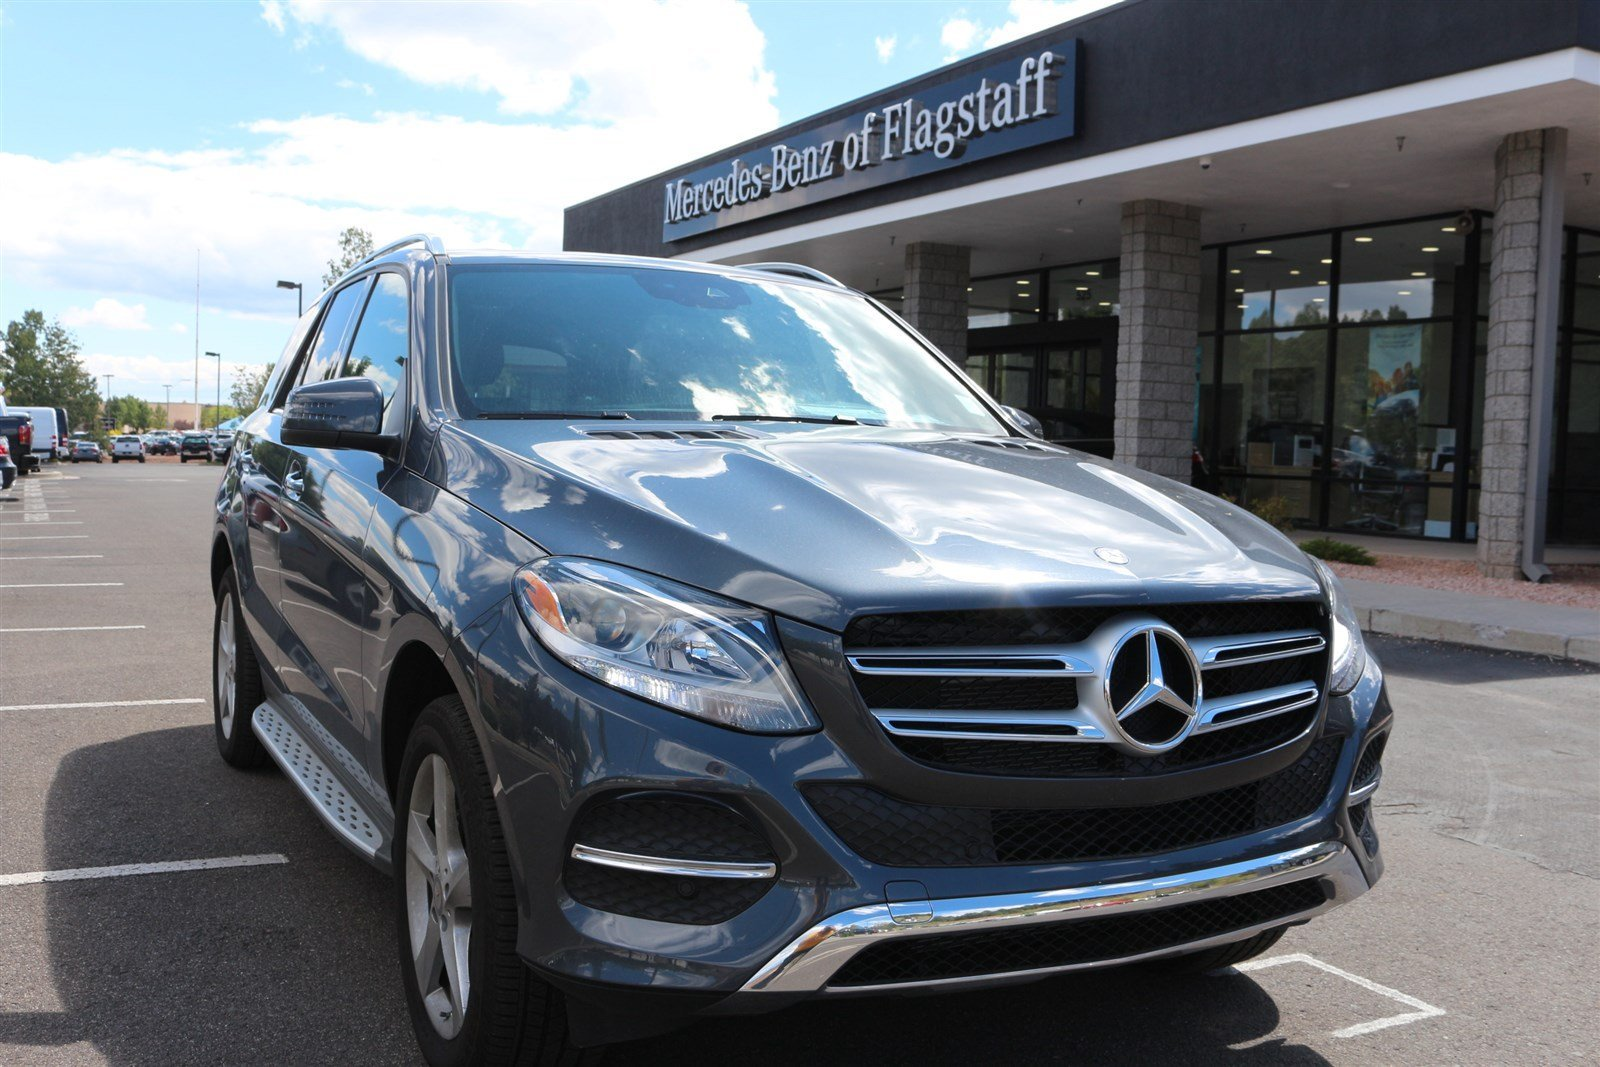 New 2016 mercedes benz gle gle 350 suv in flagstaff for Mercedes benz of flagstaff